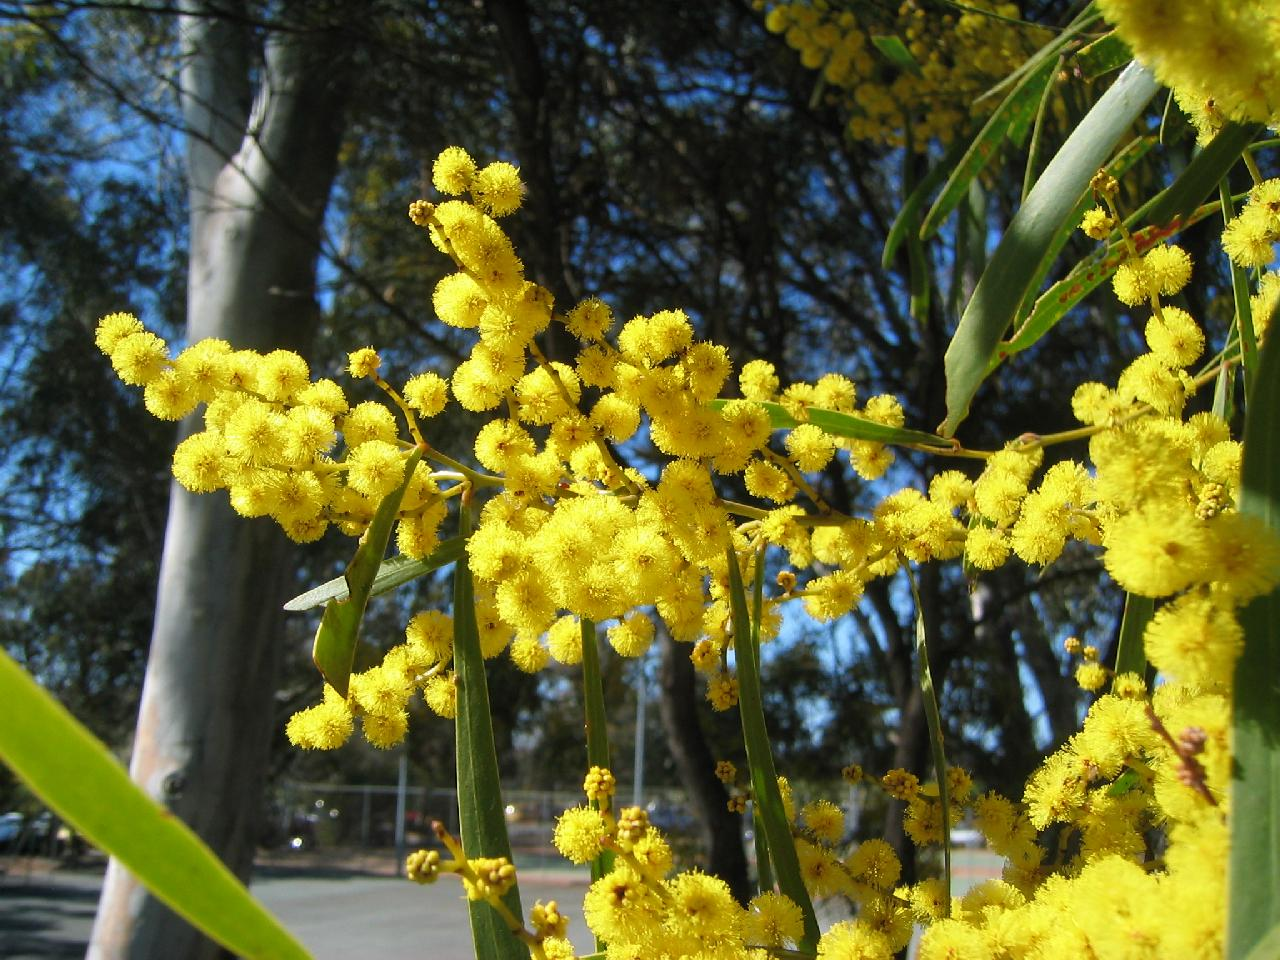 Golden Wattle Australia National Flower Flowers Flowers